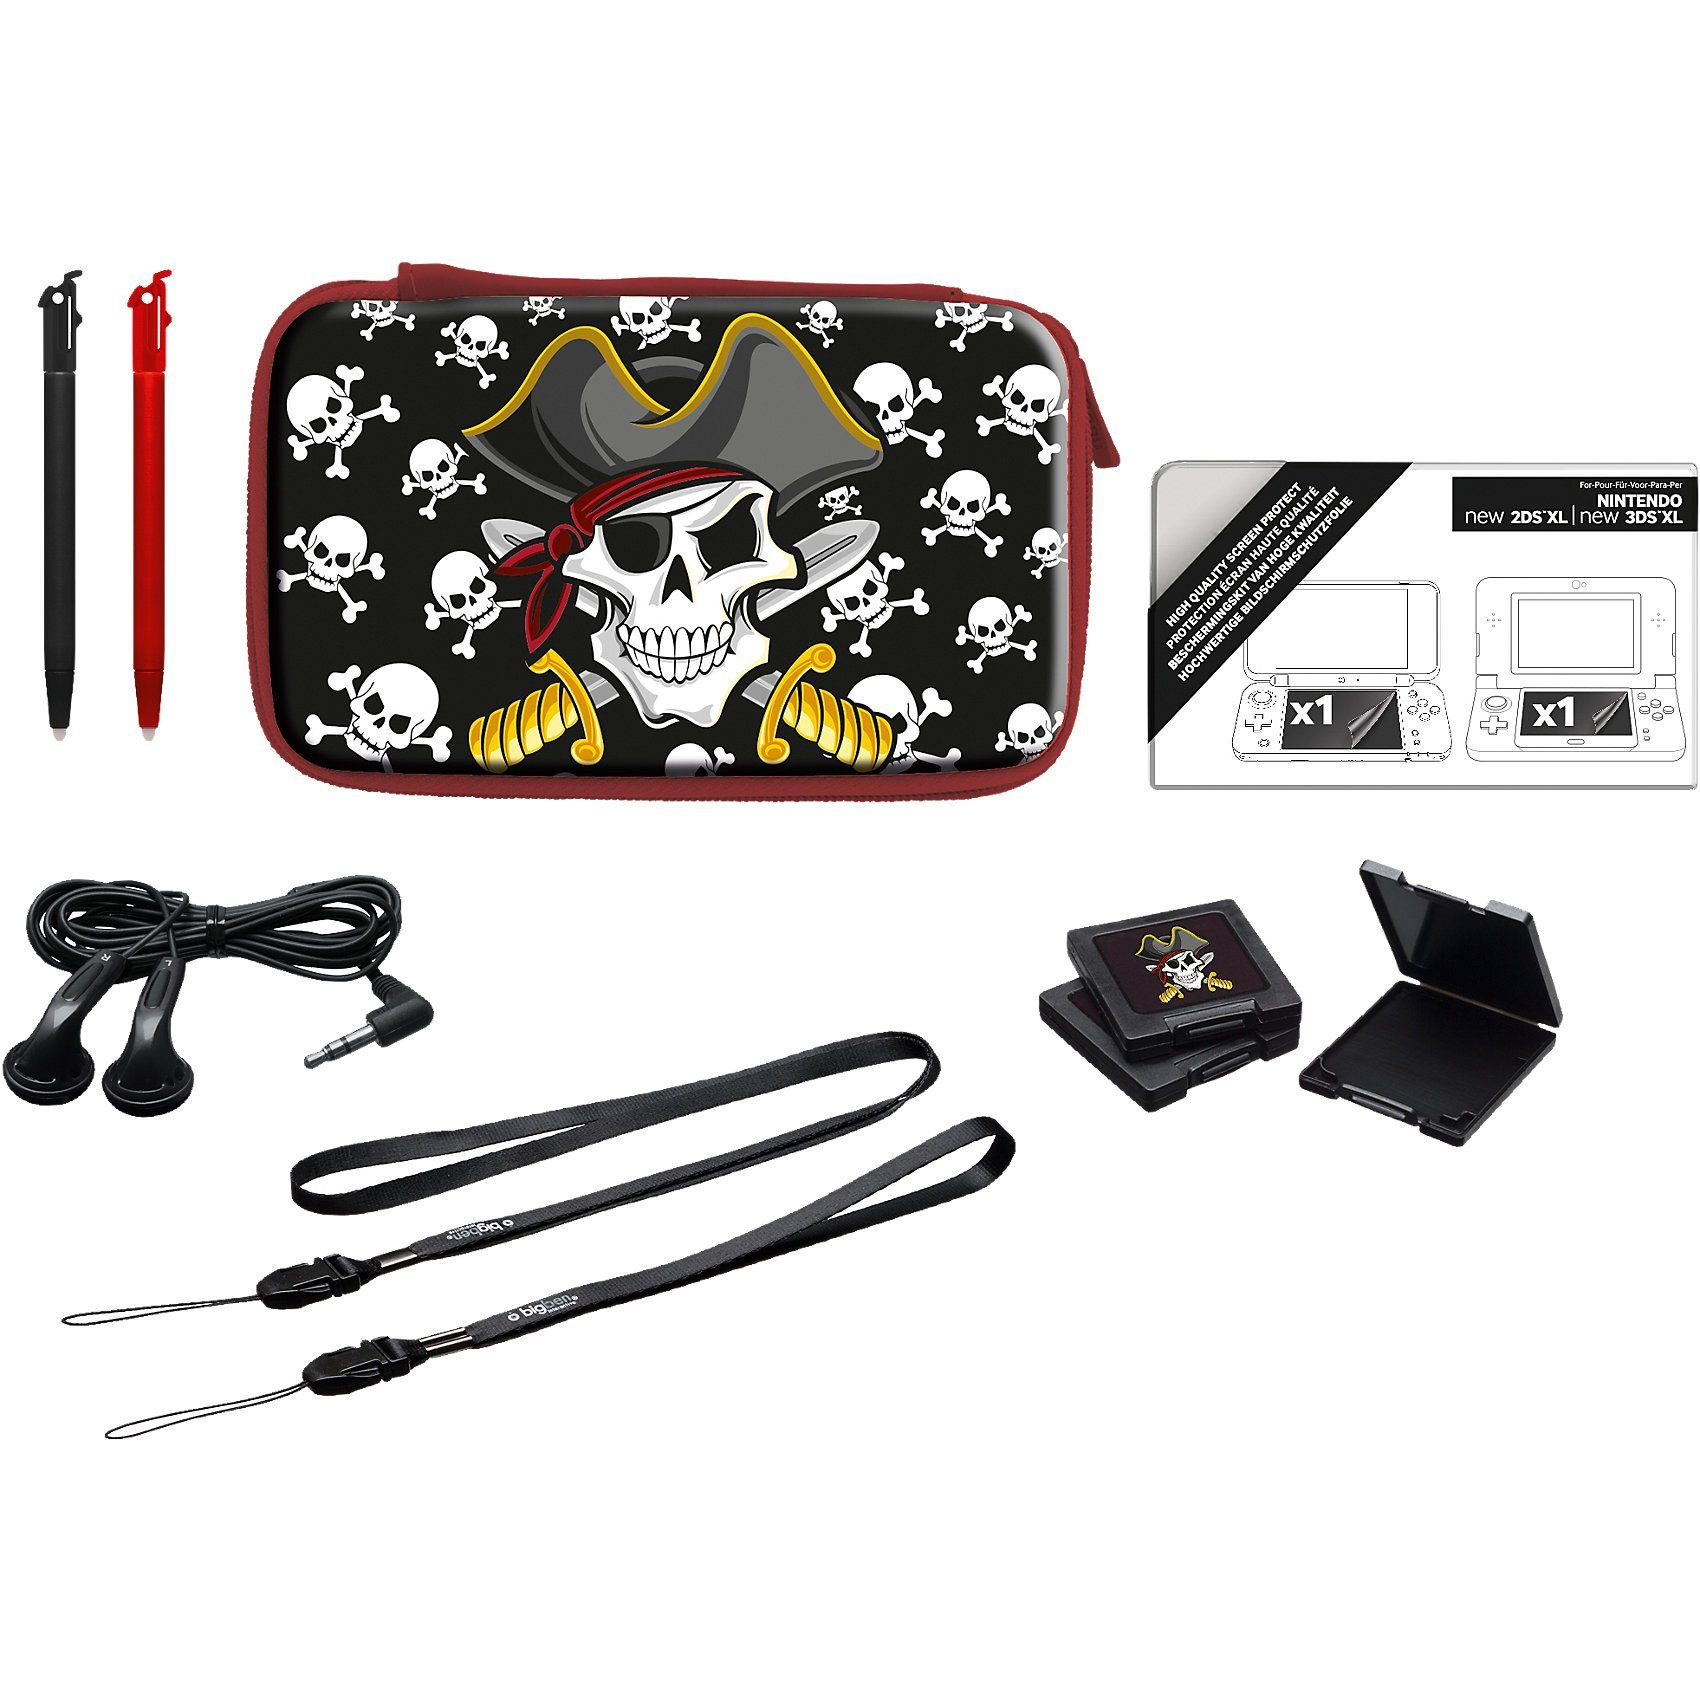 BigBen New 2DS XL Pack Essential XL Pirate